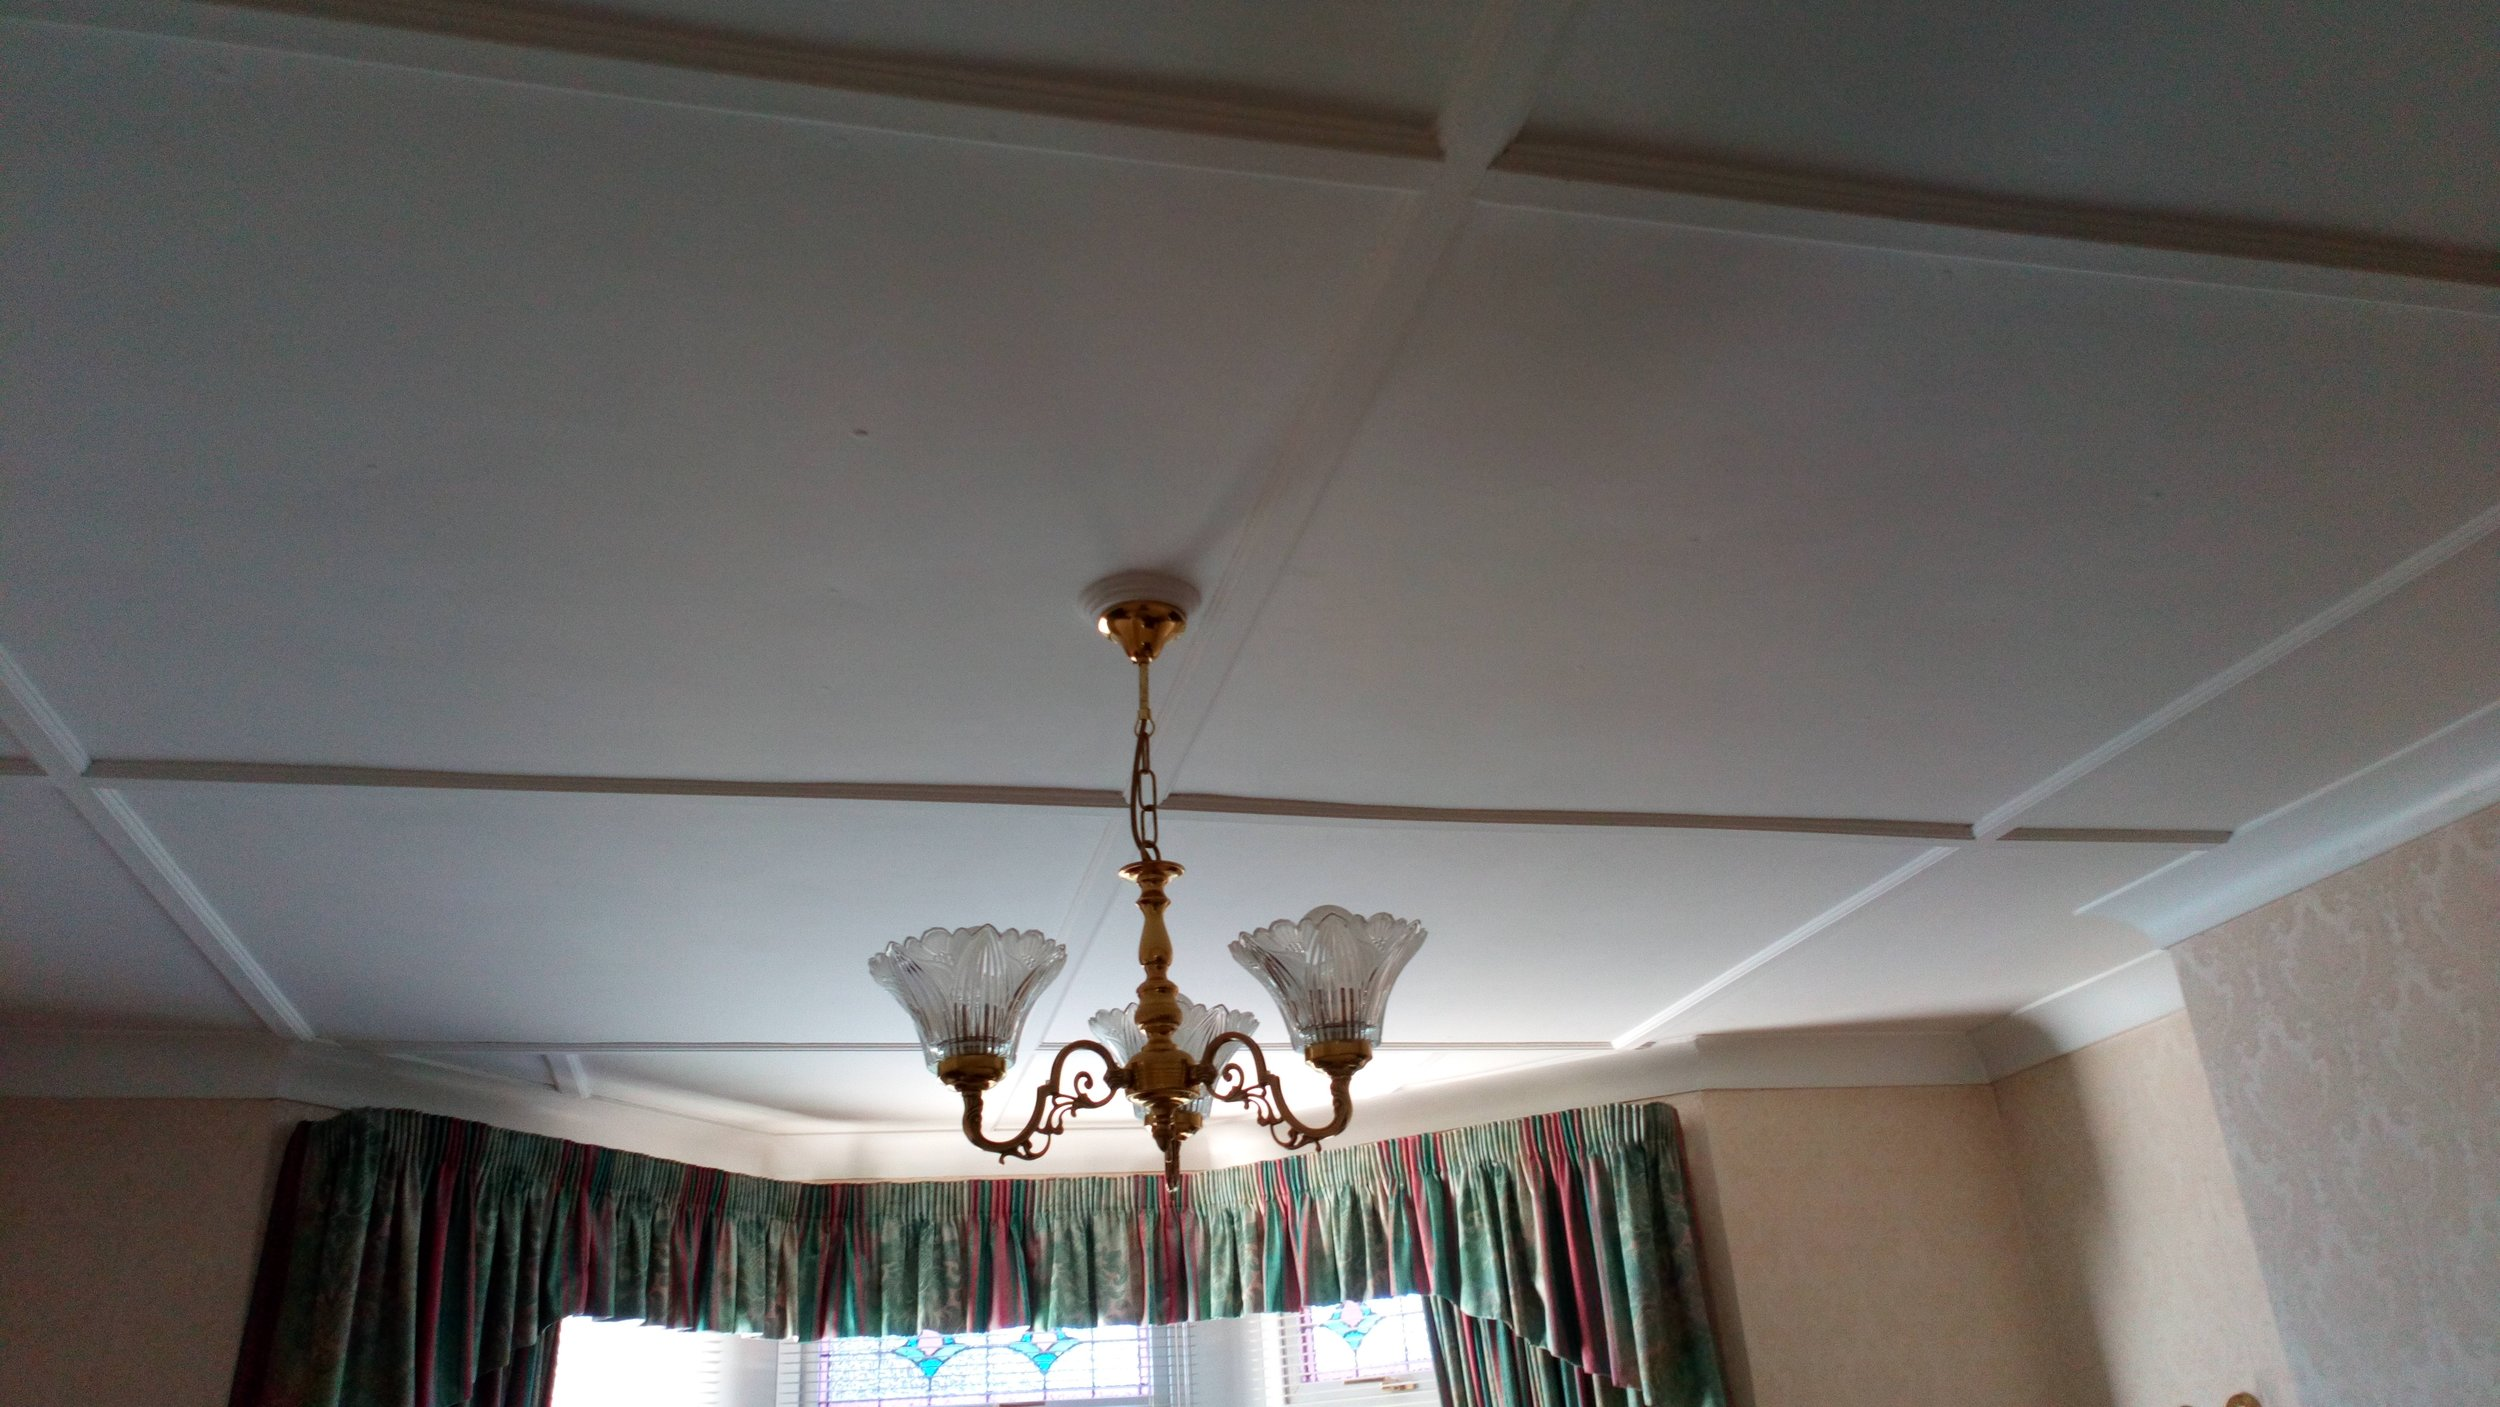 Asbestos Panels to Ceiling